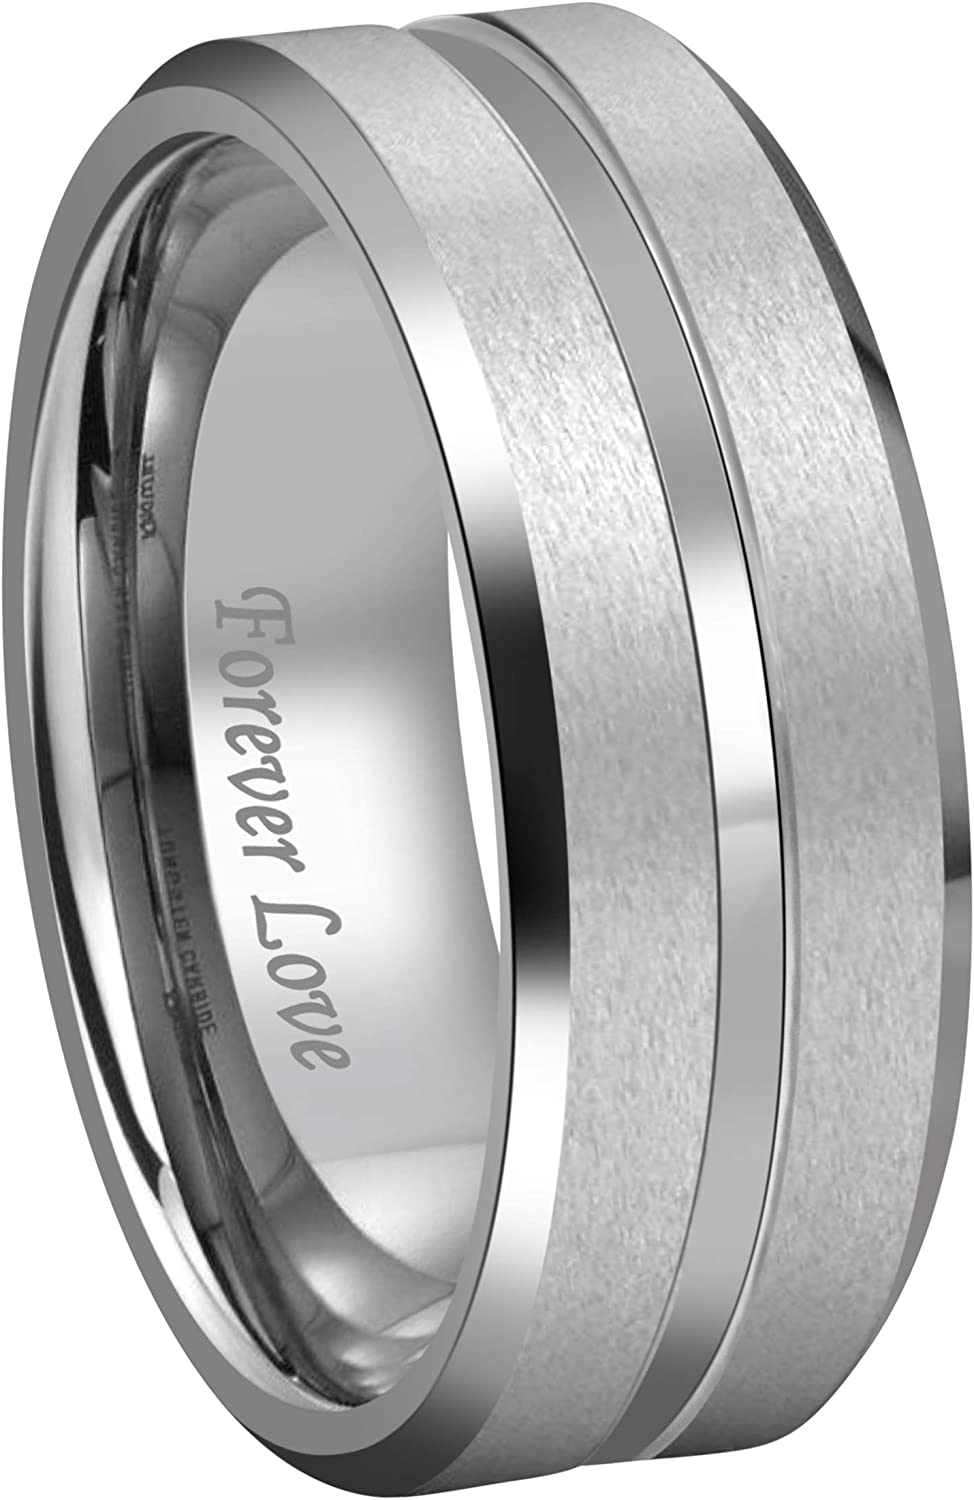 Kingary 8mm Tungsten Wedding Anniversary Bands for Couples Black/Silver Matte Finish Beveled Edge Ring Engraved Forever Love Size 6 to 17